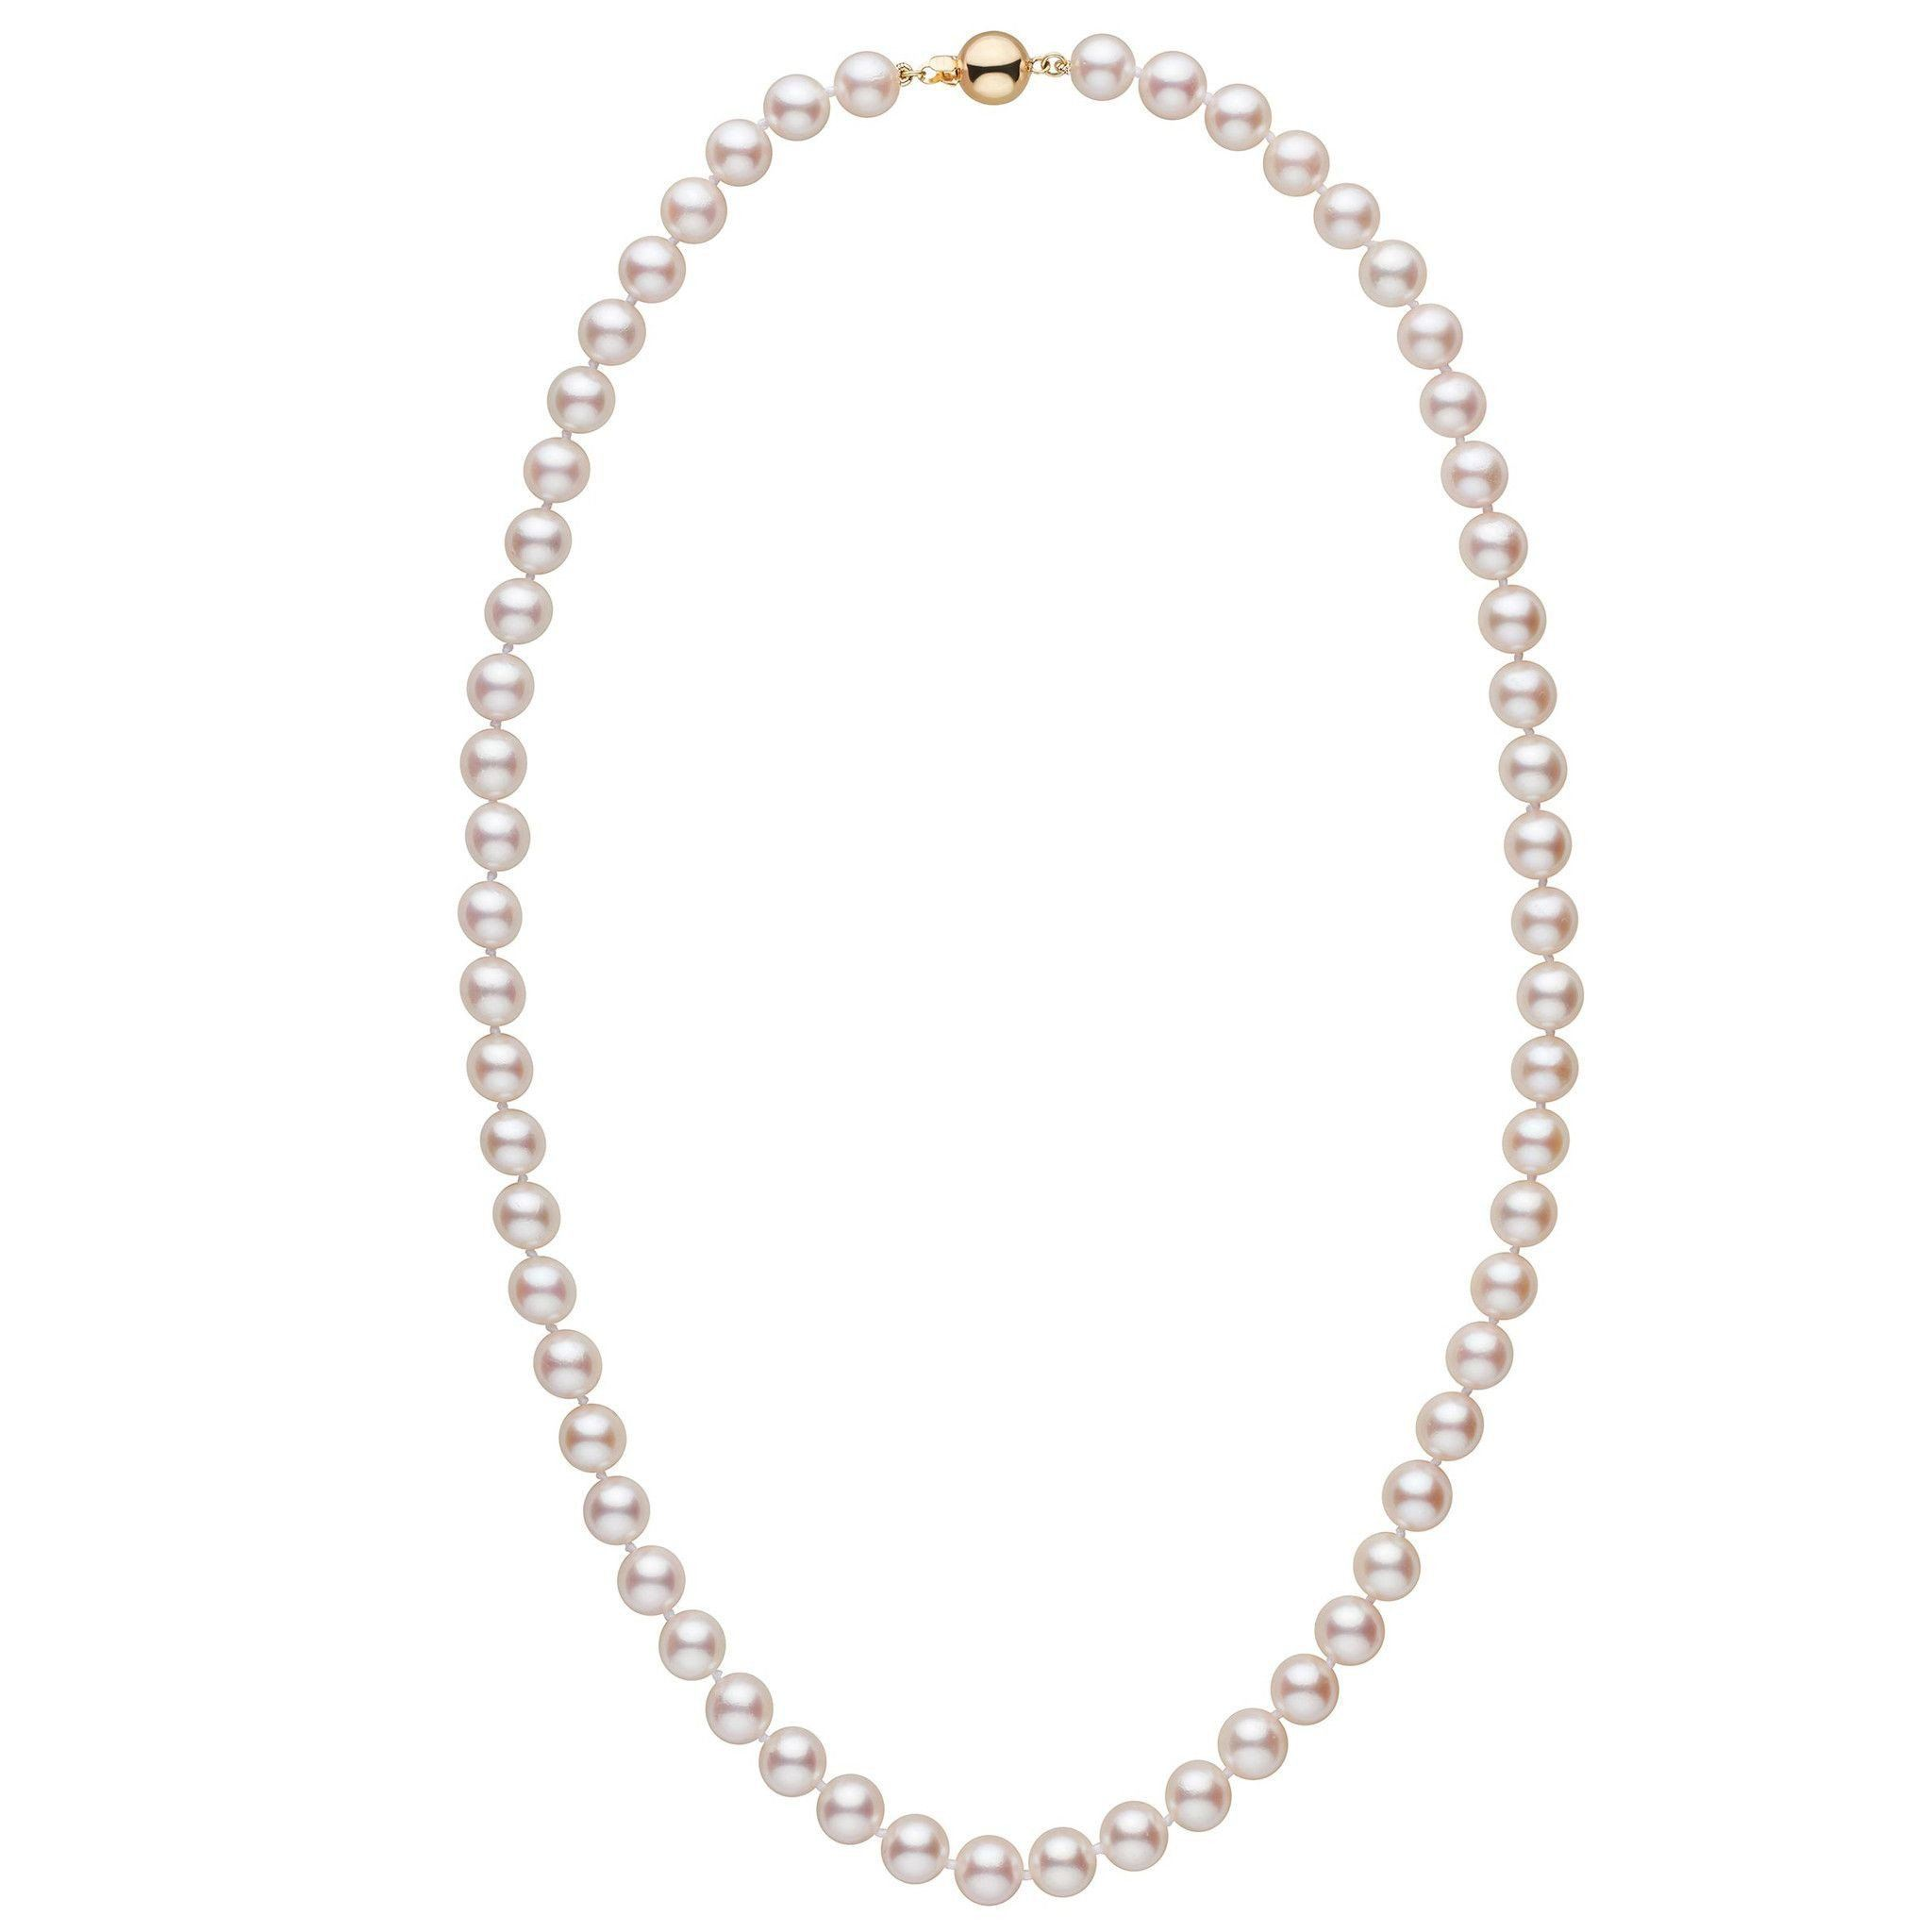 7.5-8.0 mm 22 inch AA+ White Akoya Pearl Necklace